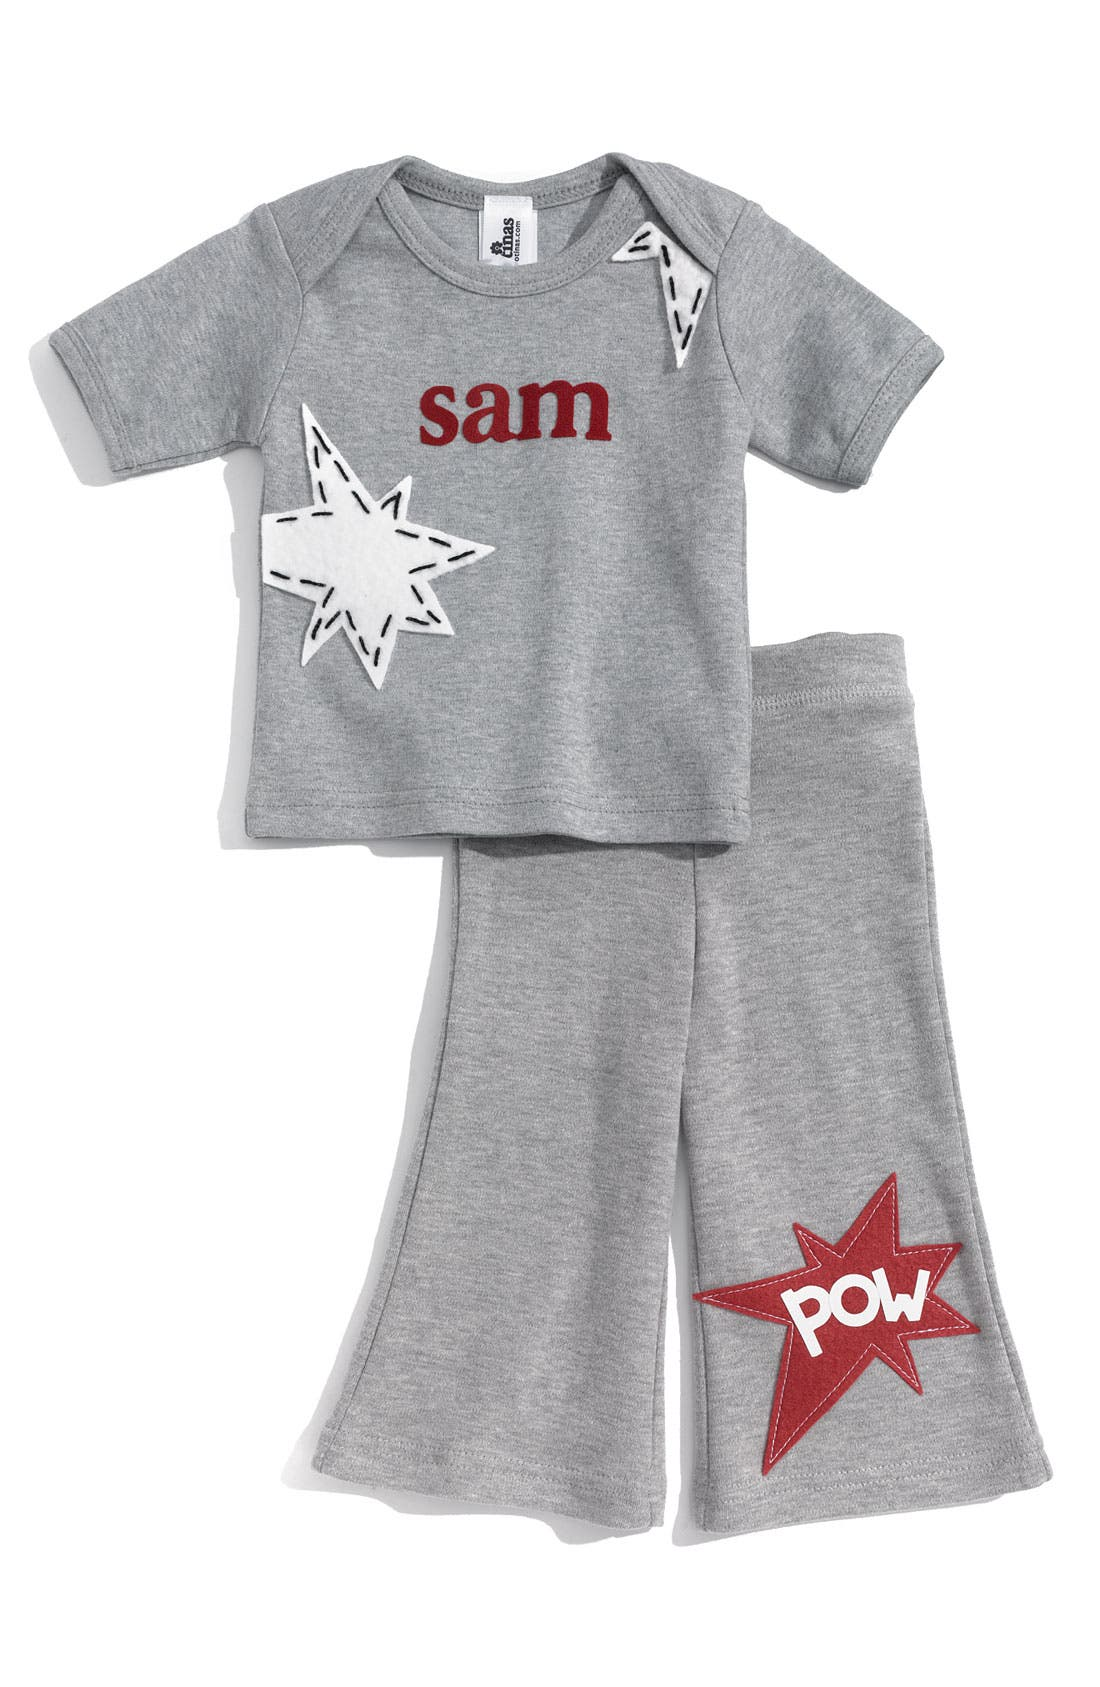 Main Image - Two Tinas Personalized T-Shirt & Pants Set (Baby)